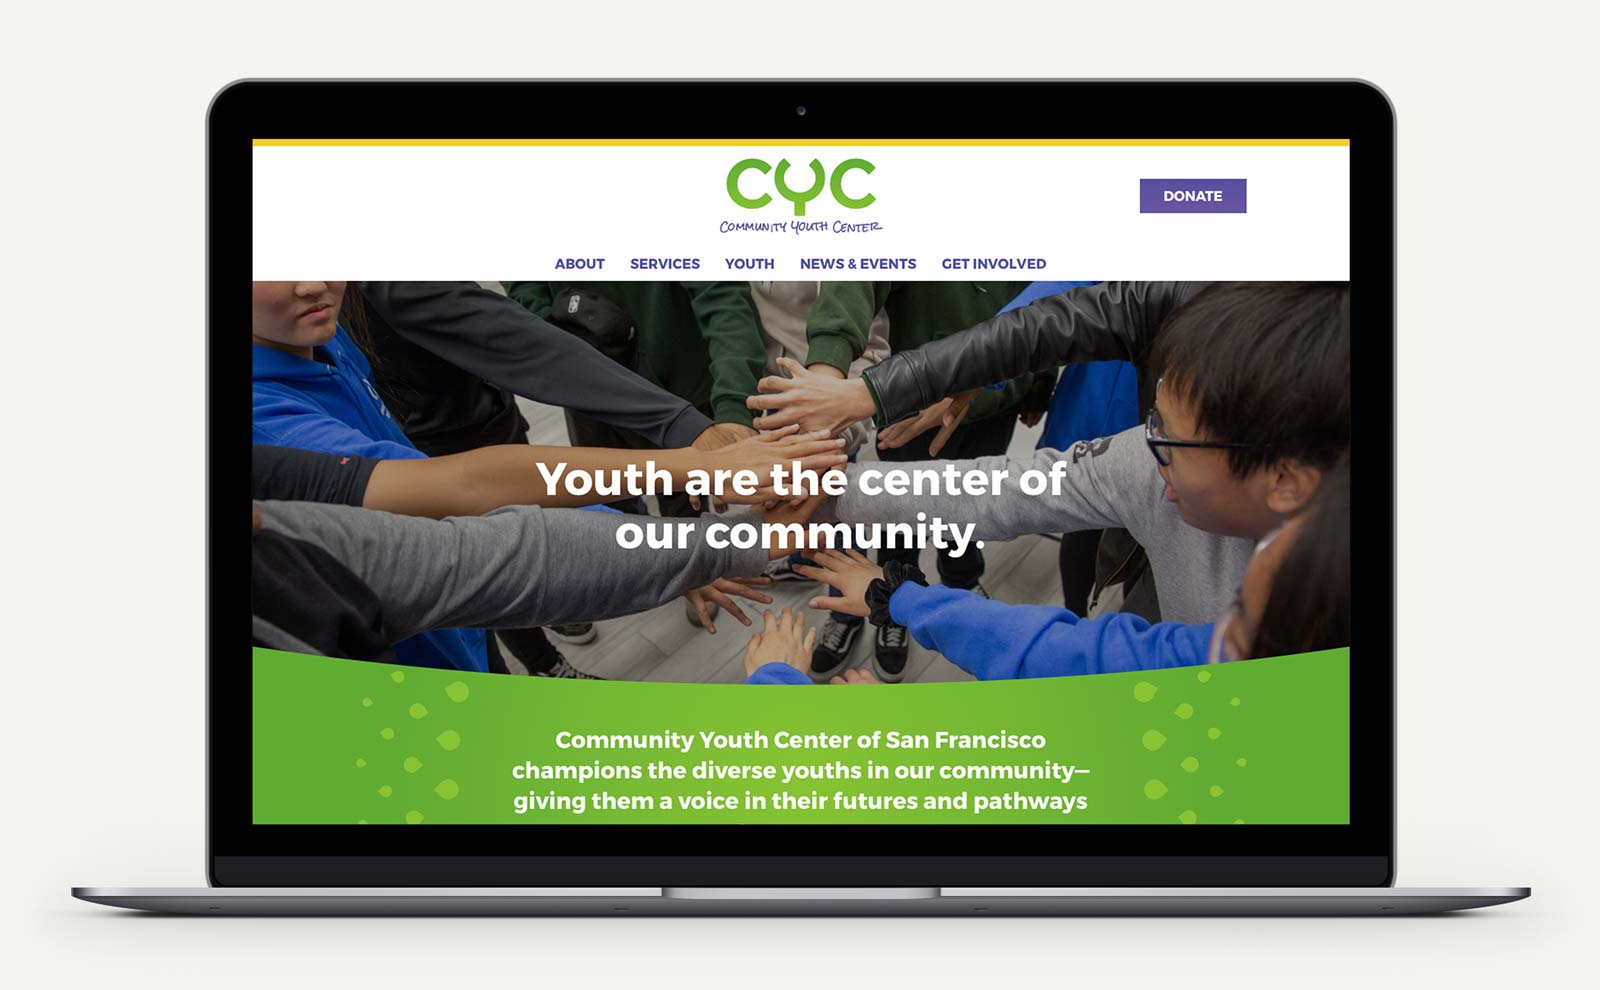 CYC website design mockup